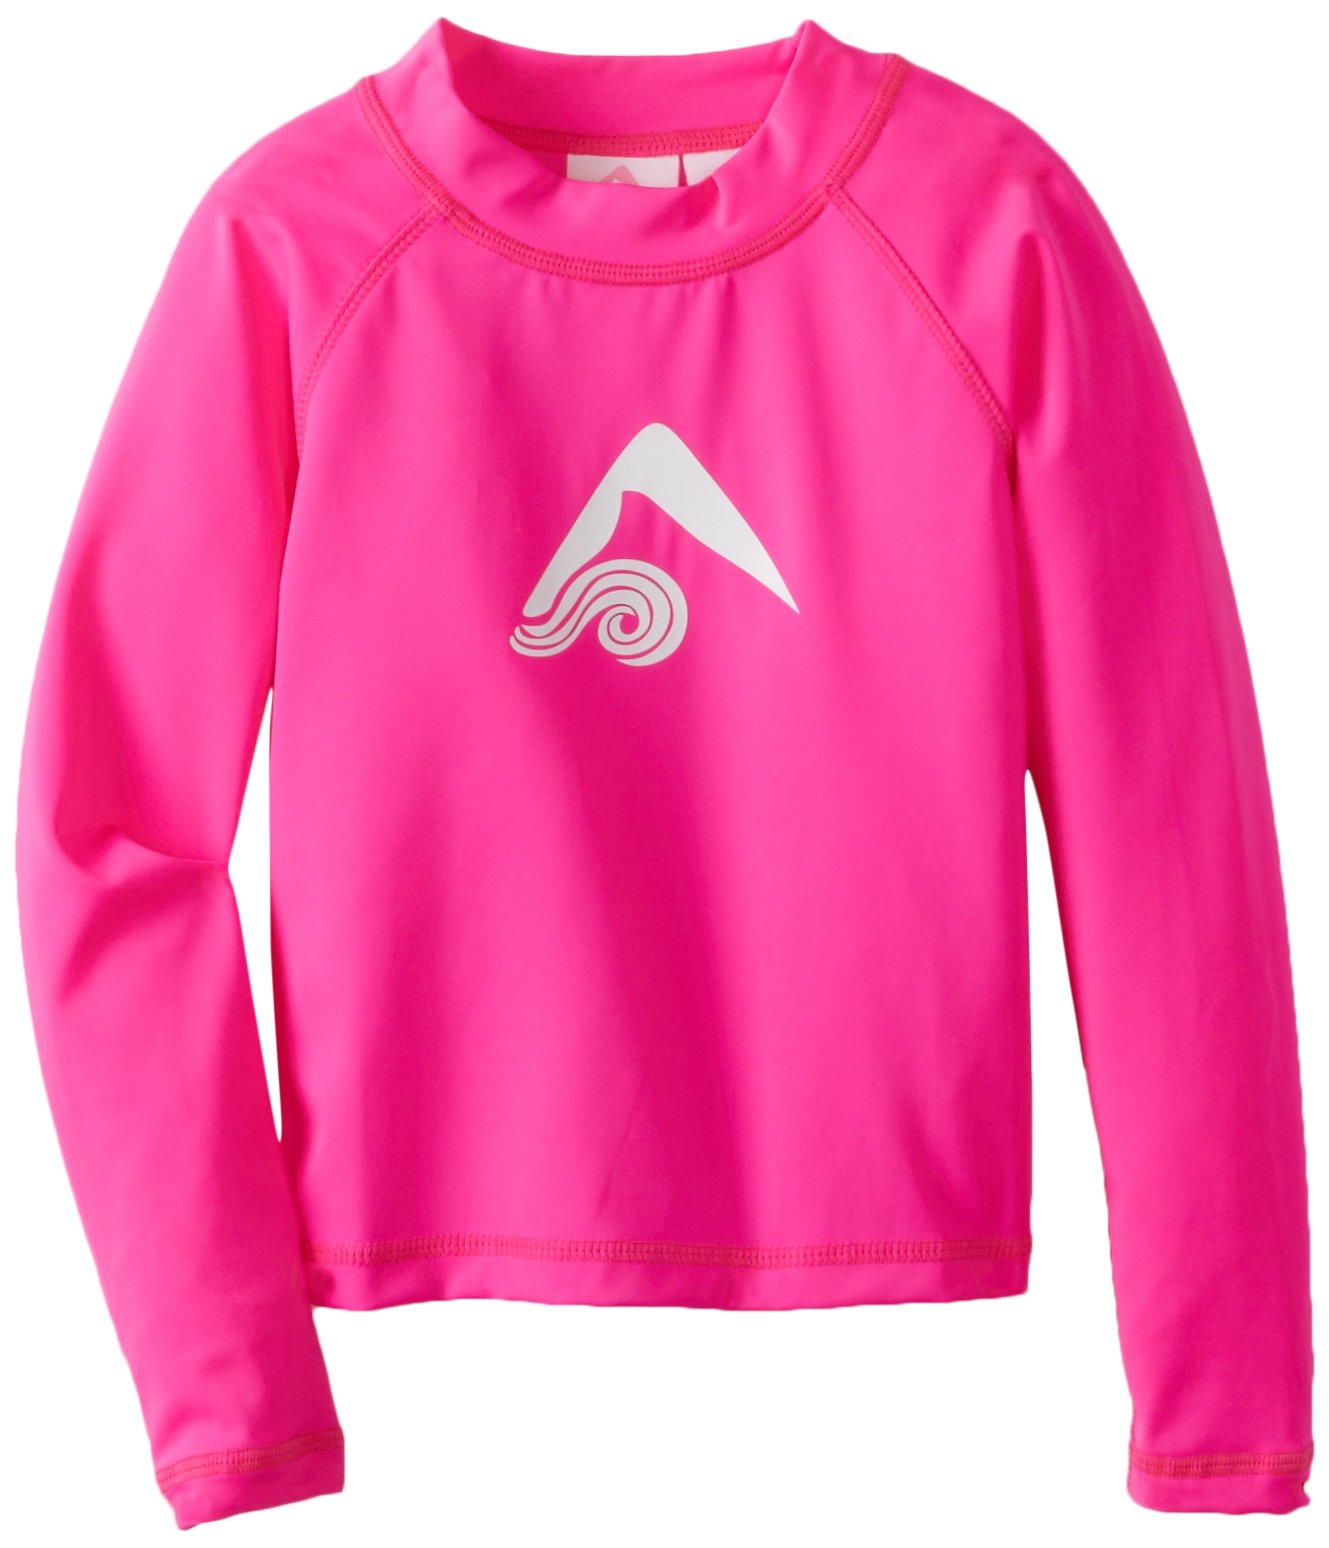 Kanu Surf Little Girls' Keri UPF 50+ Long Sleeve Rashguards, Neon Pink, 5T